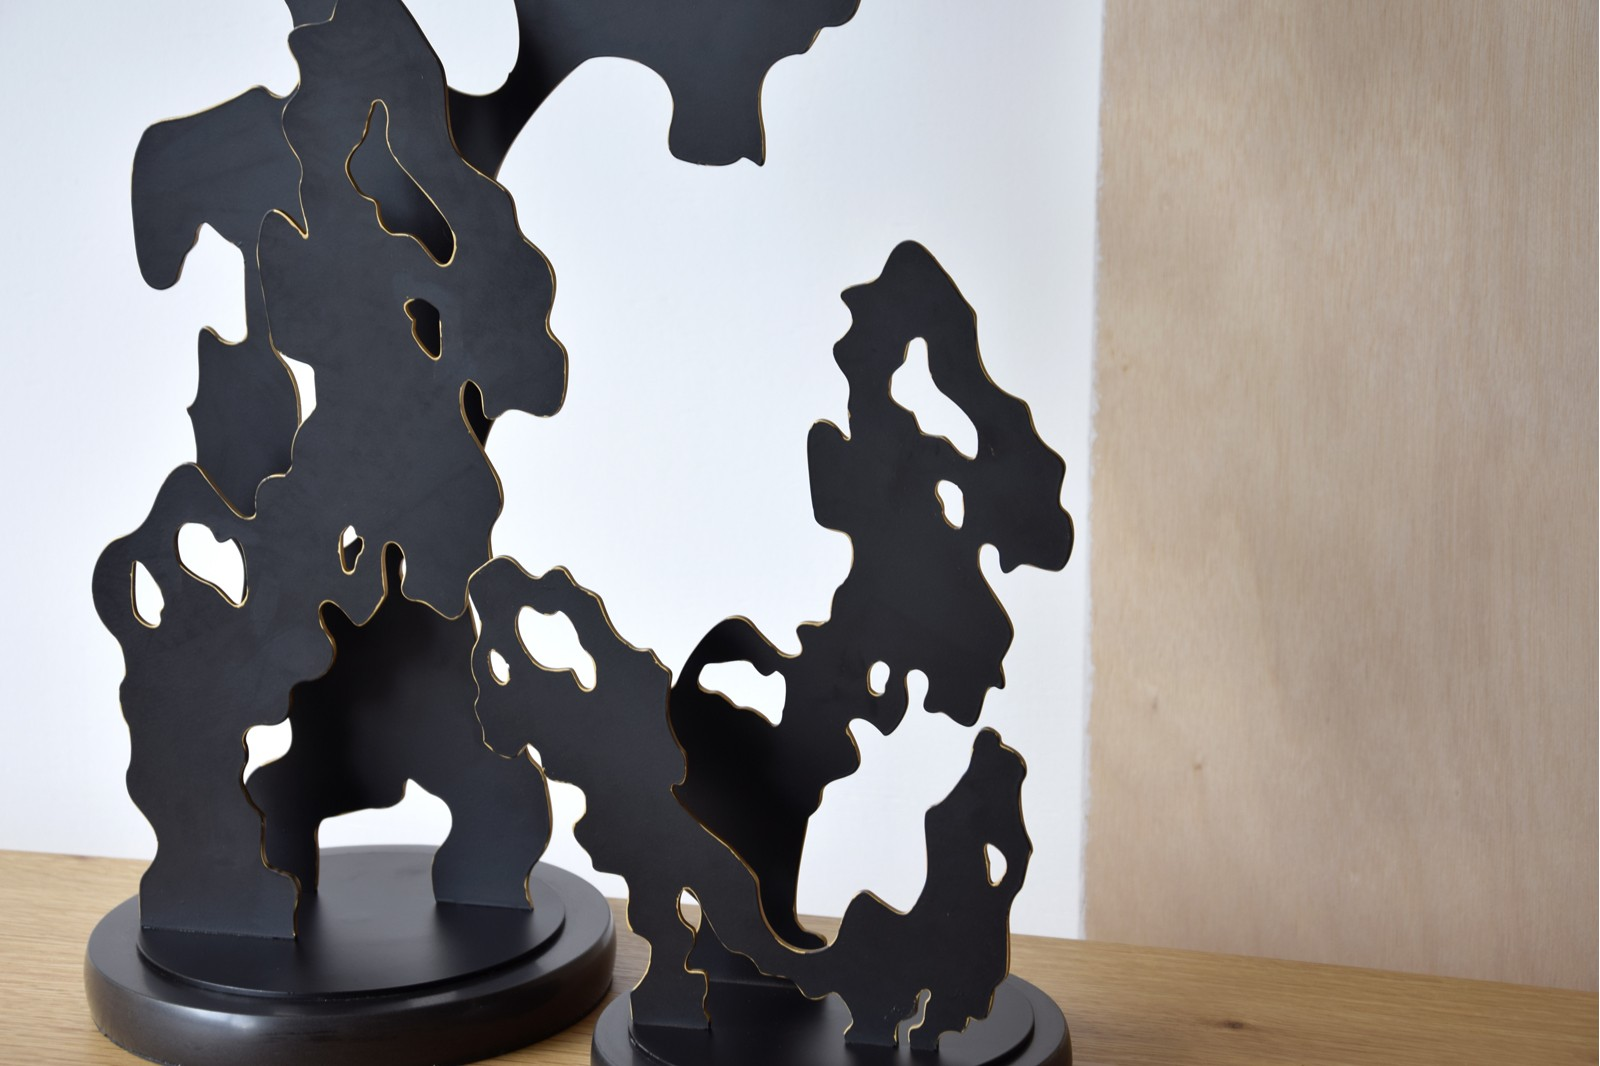 ABSTRACT TREE SCULPTURE.  METAL AND MARBLE